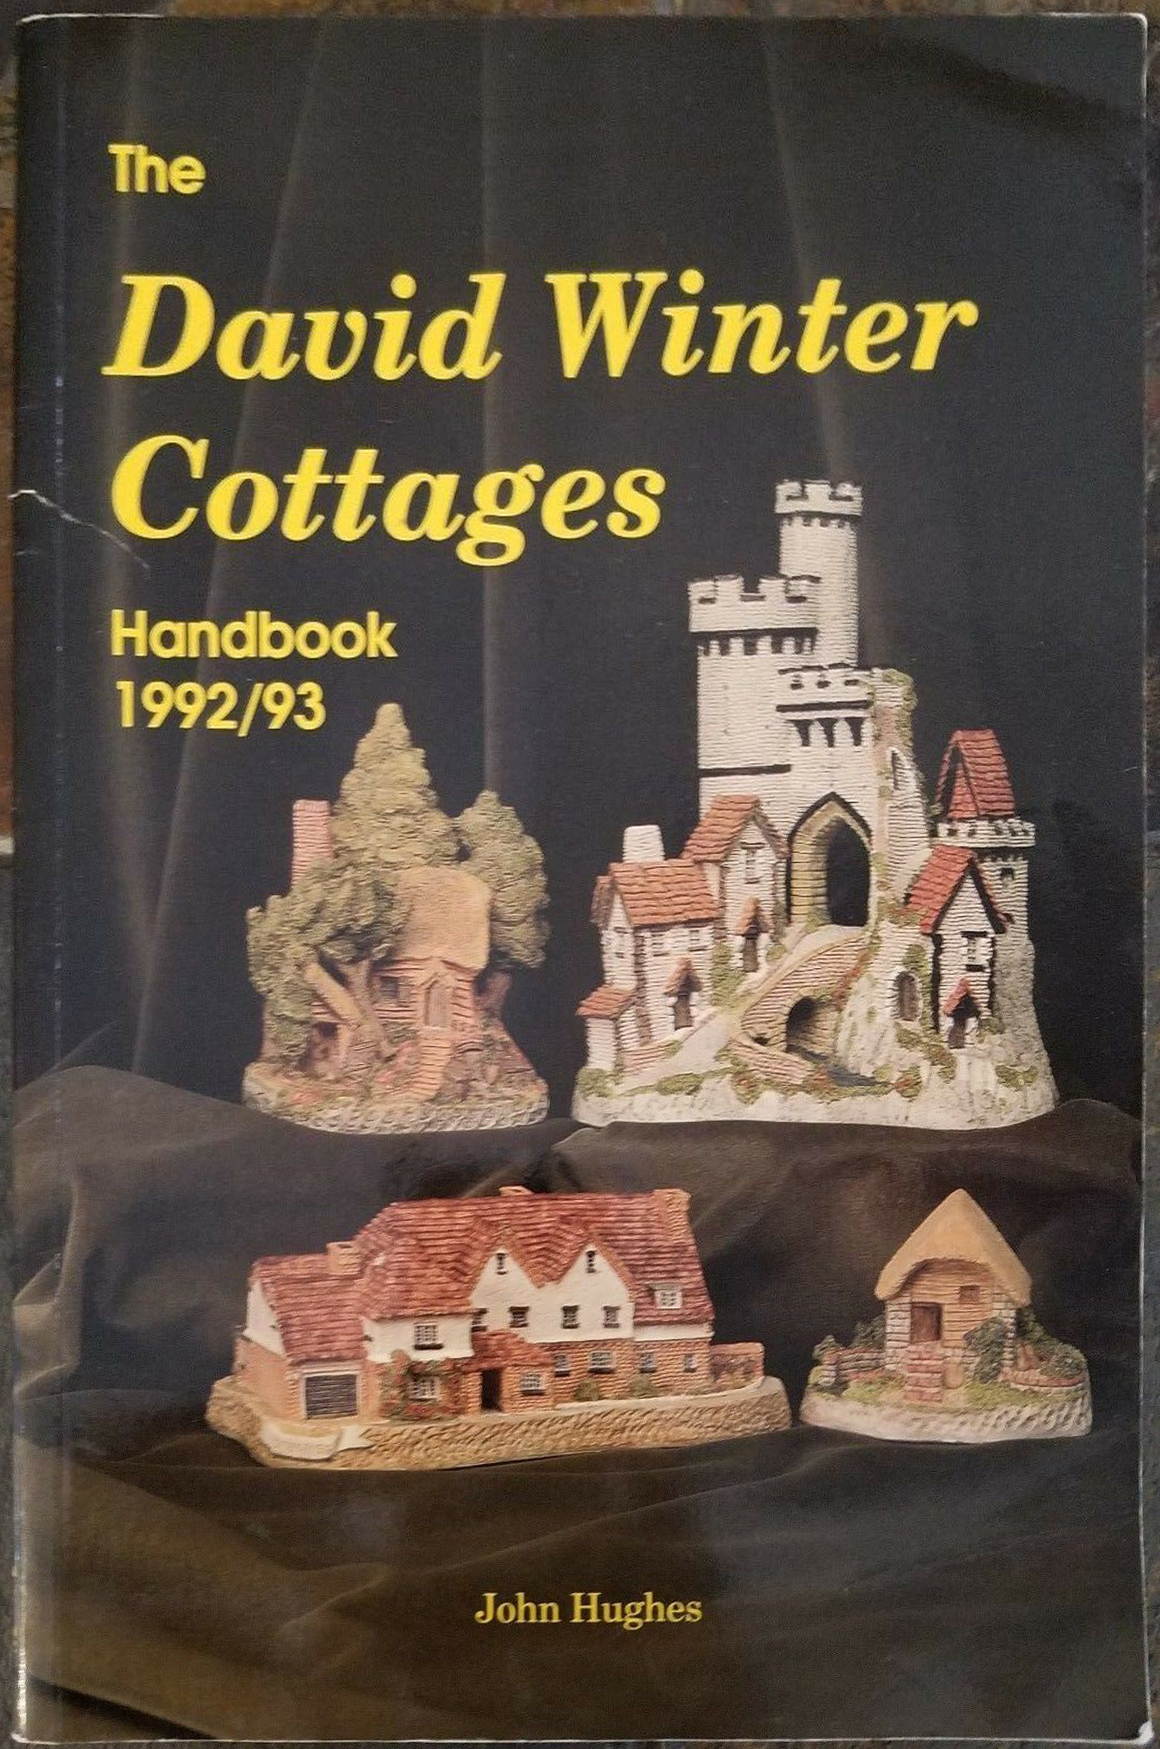 The David Winter Cottages Handbook by John Hughes